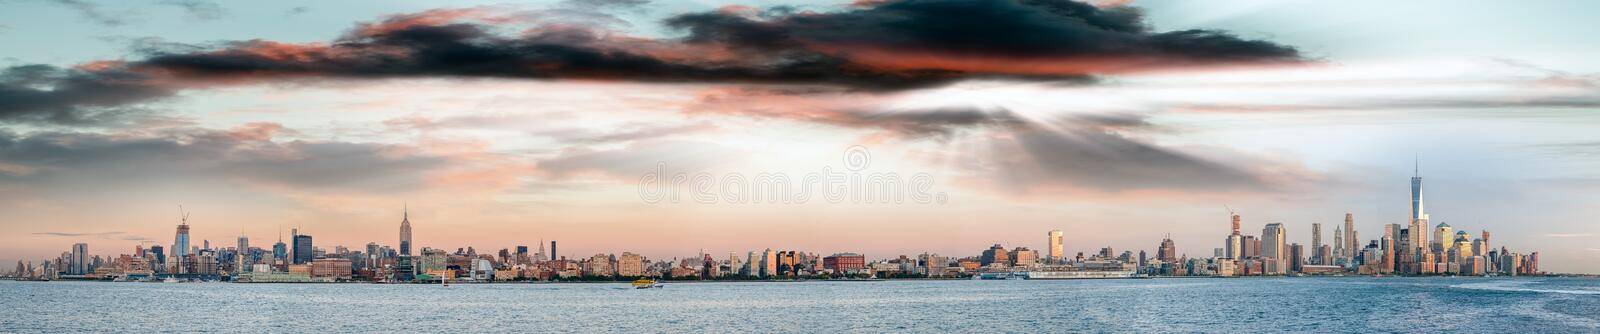 New York City skyline - Panoramic view at sunset from Jersey Cit stock photo